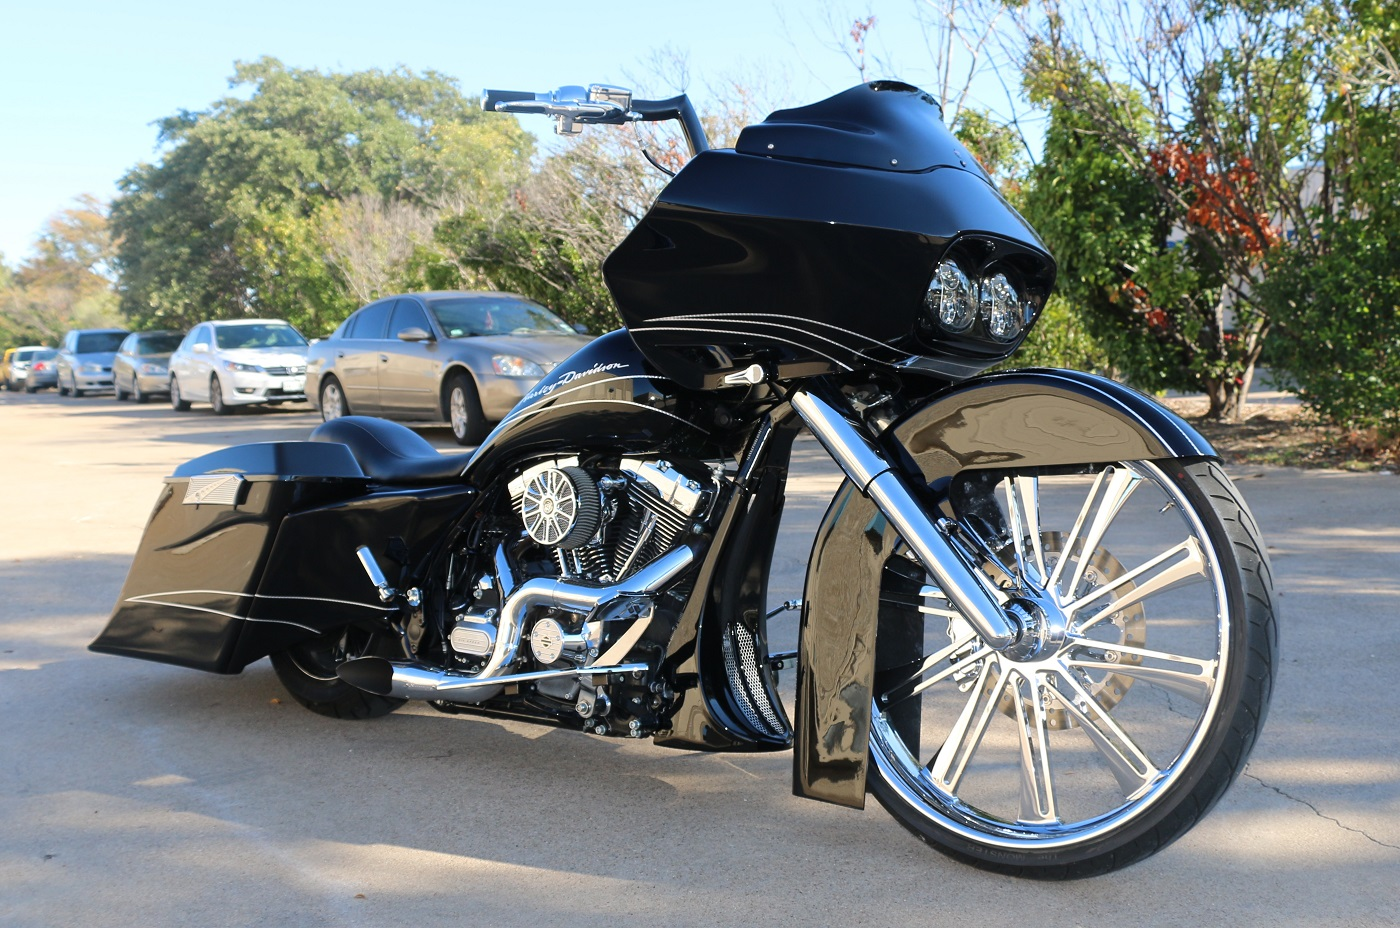 Harley Service Texas >> Harley Bagger Front End Pckages | Pickard USA